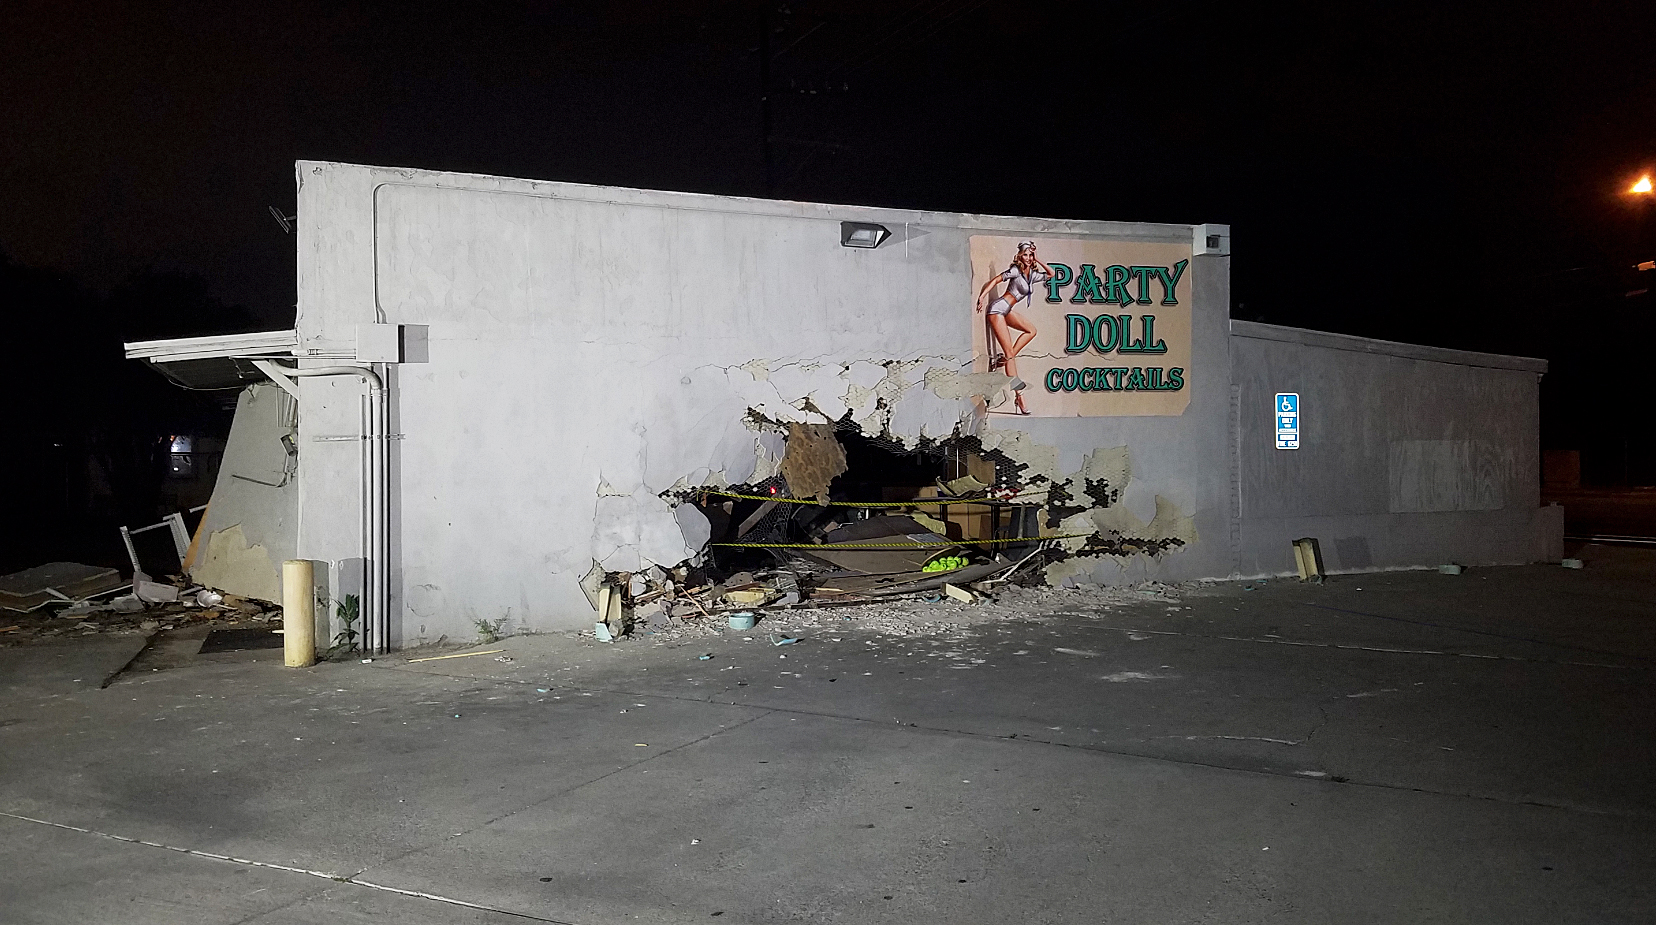 A pickup truck crashed into the Party Doll bar in Highland on March 20, 2019. (Credit: KTLA)